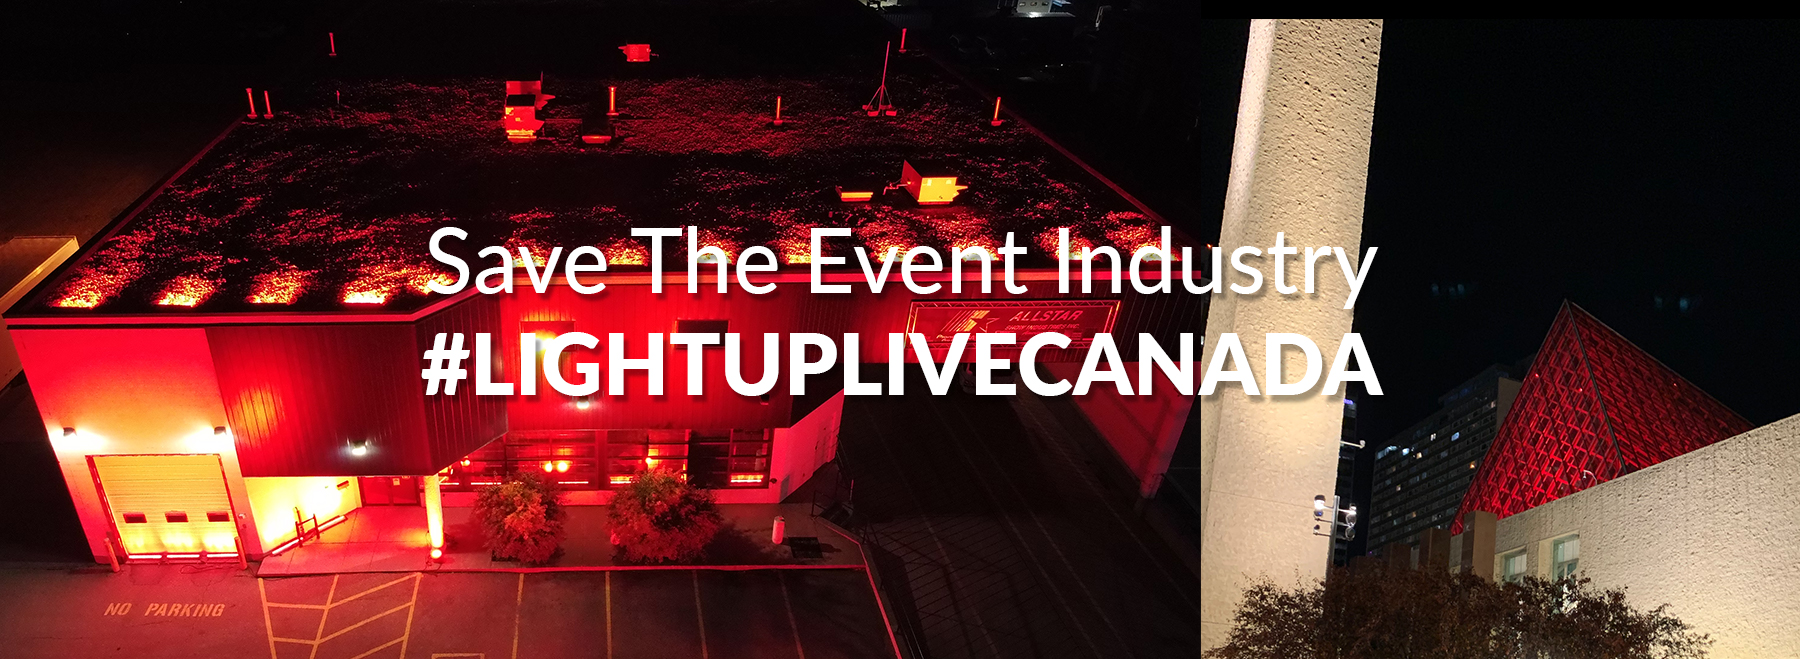 Image promoting LIGHTUPLIVECANADA.